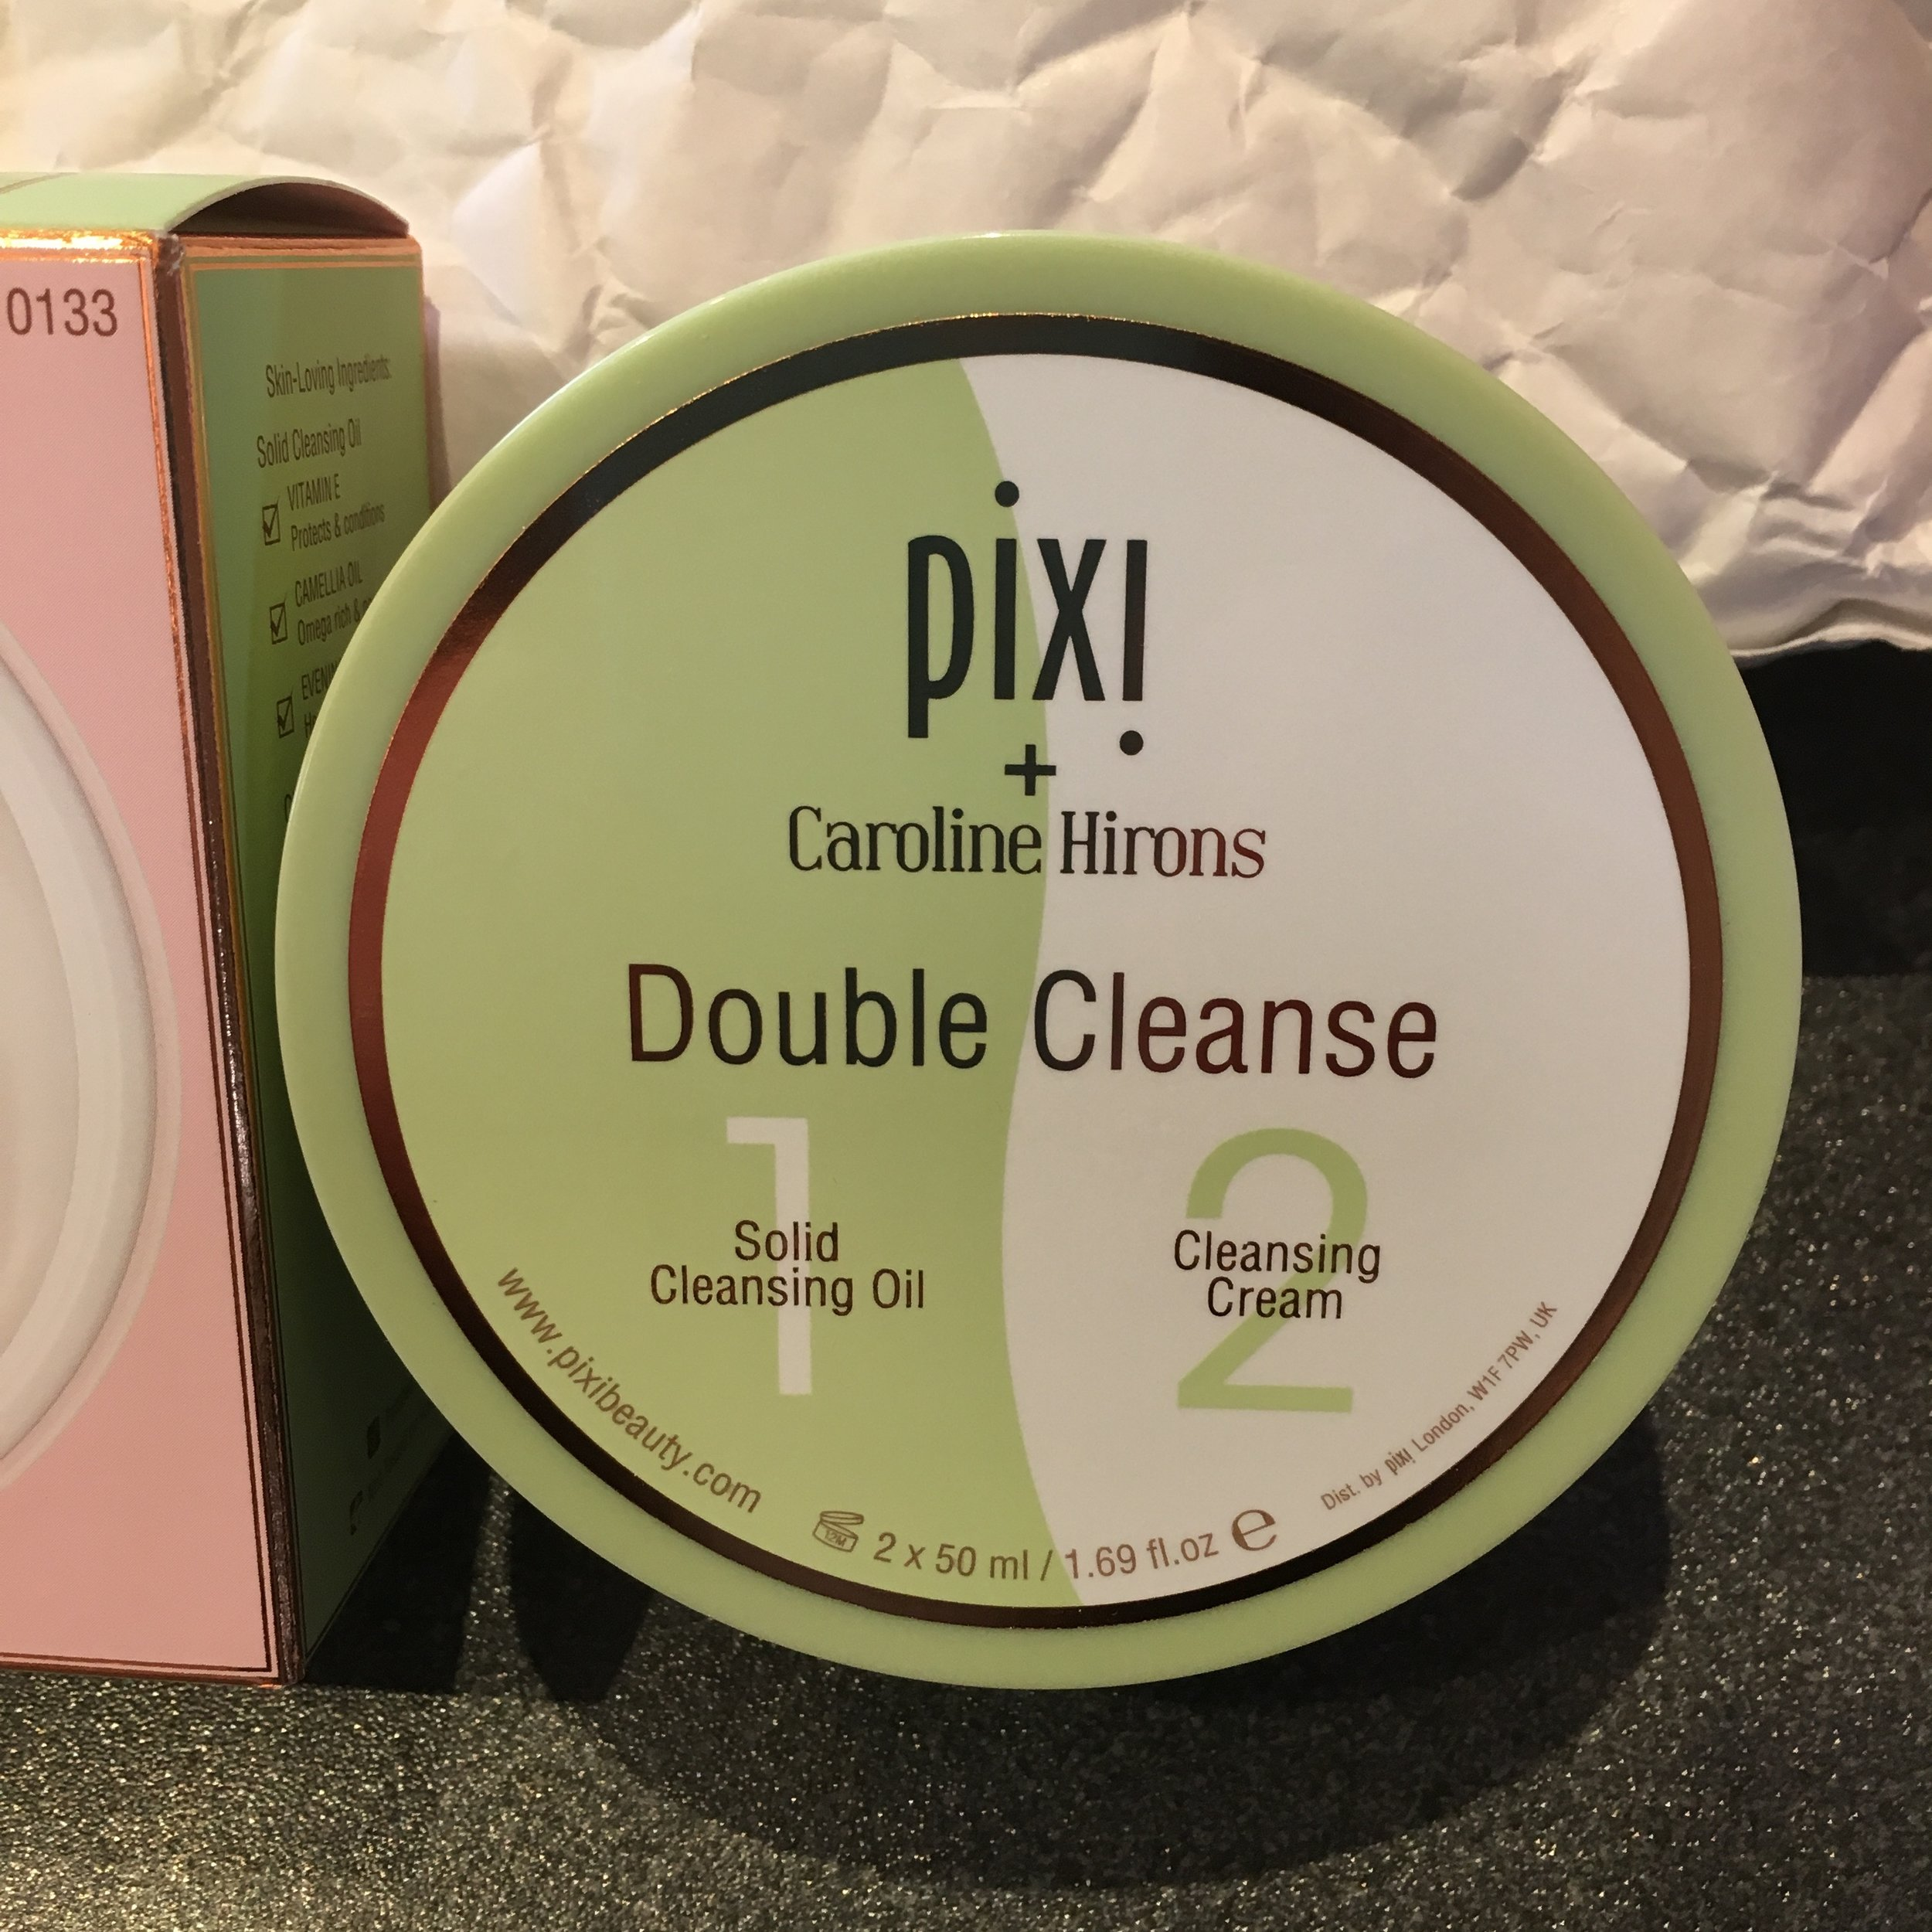 The fabled Caroline Hirons Double Cleanse, from Pixi and la Hirons